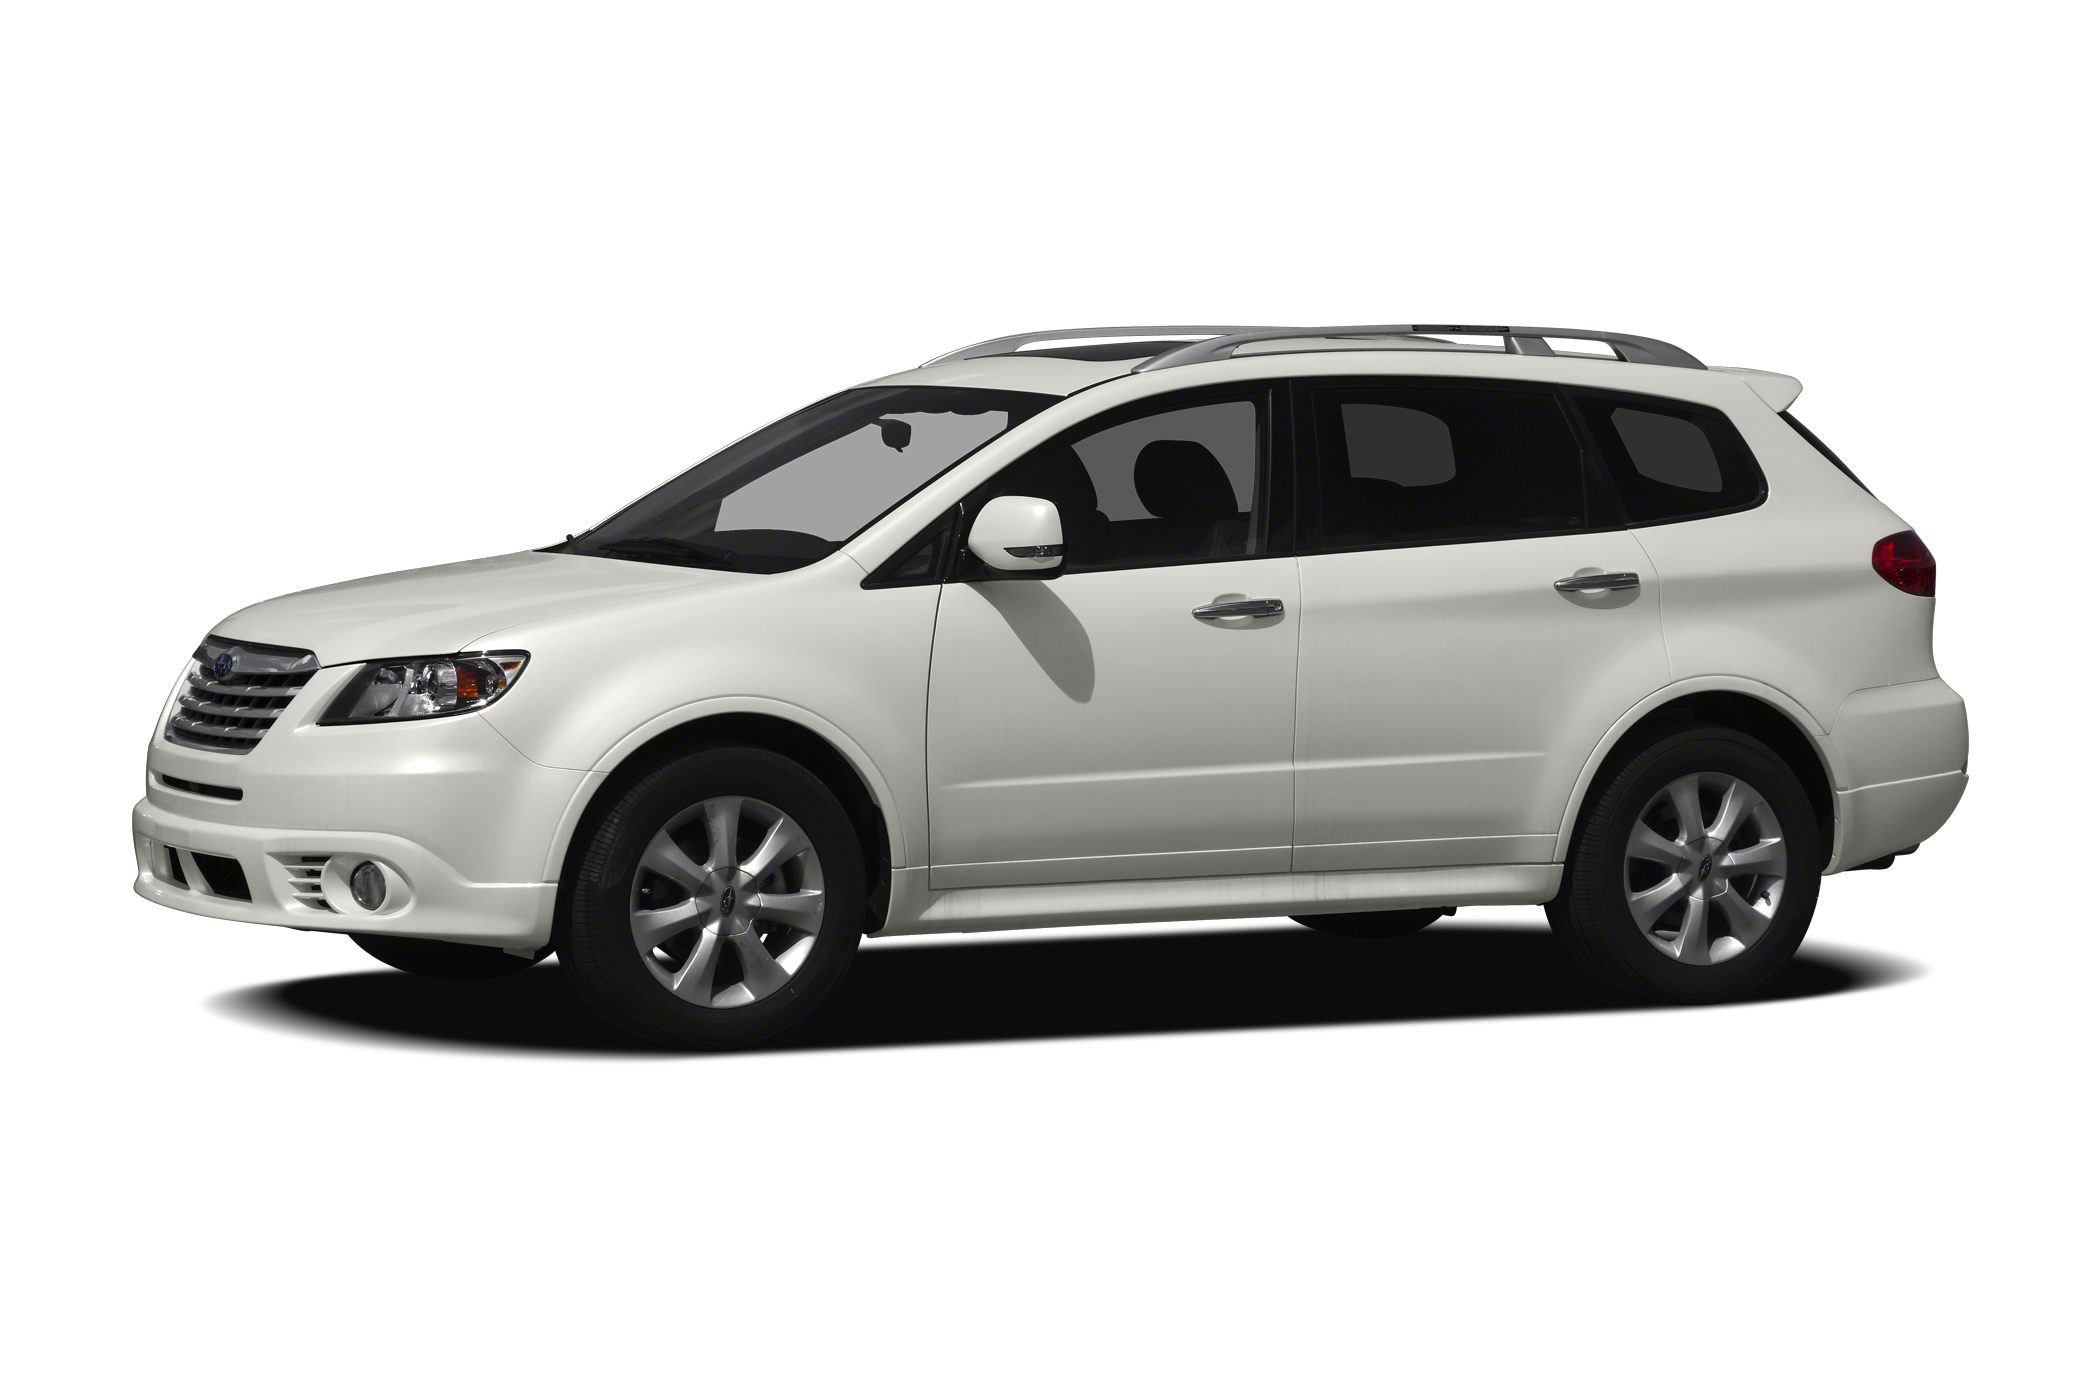 2010 Subaru Tribeca 3.6 R Limited SUV for sale in Marysville for $19,995 with 87,275 miles